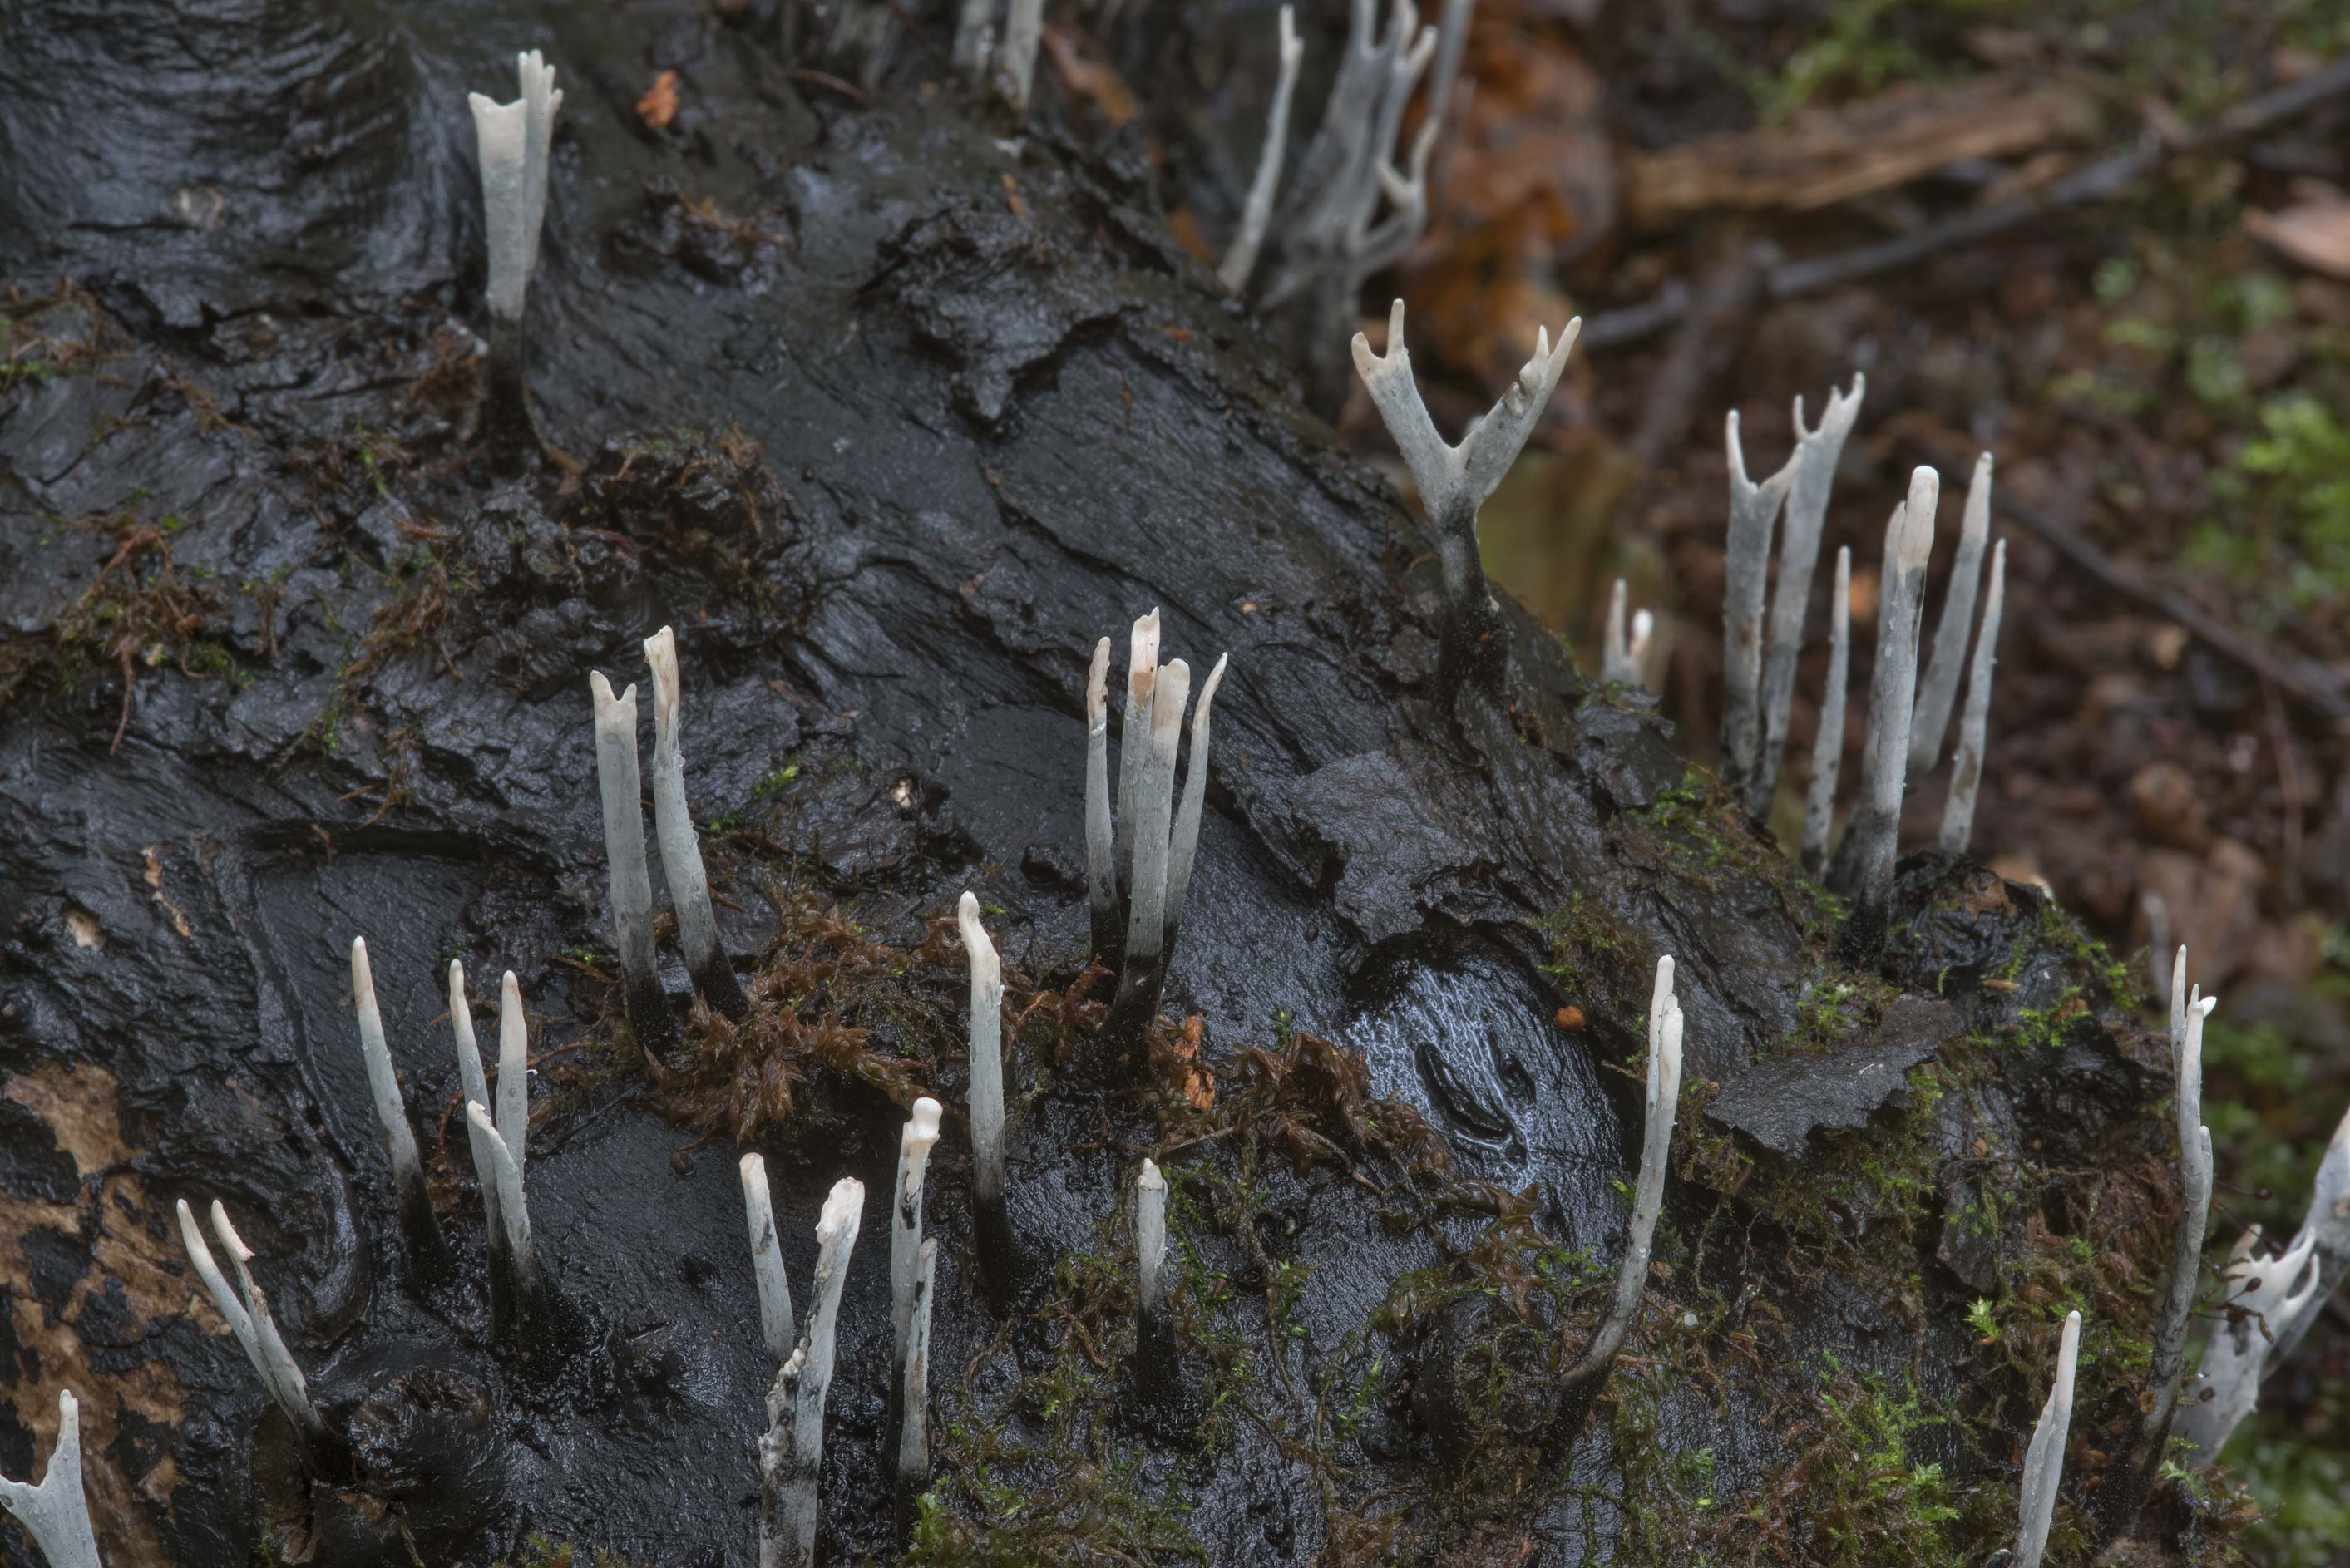 Close up of candlesnuff fungus (Xylaria hypoxylon...west from St.Petersburg, Russia